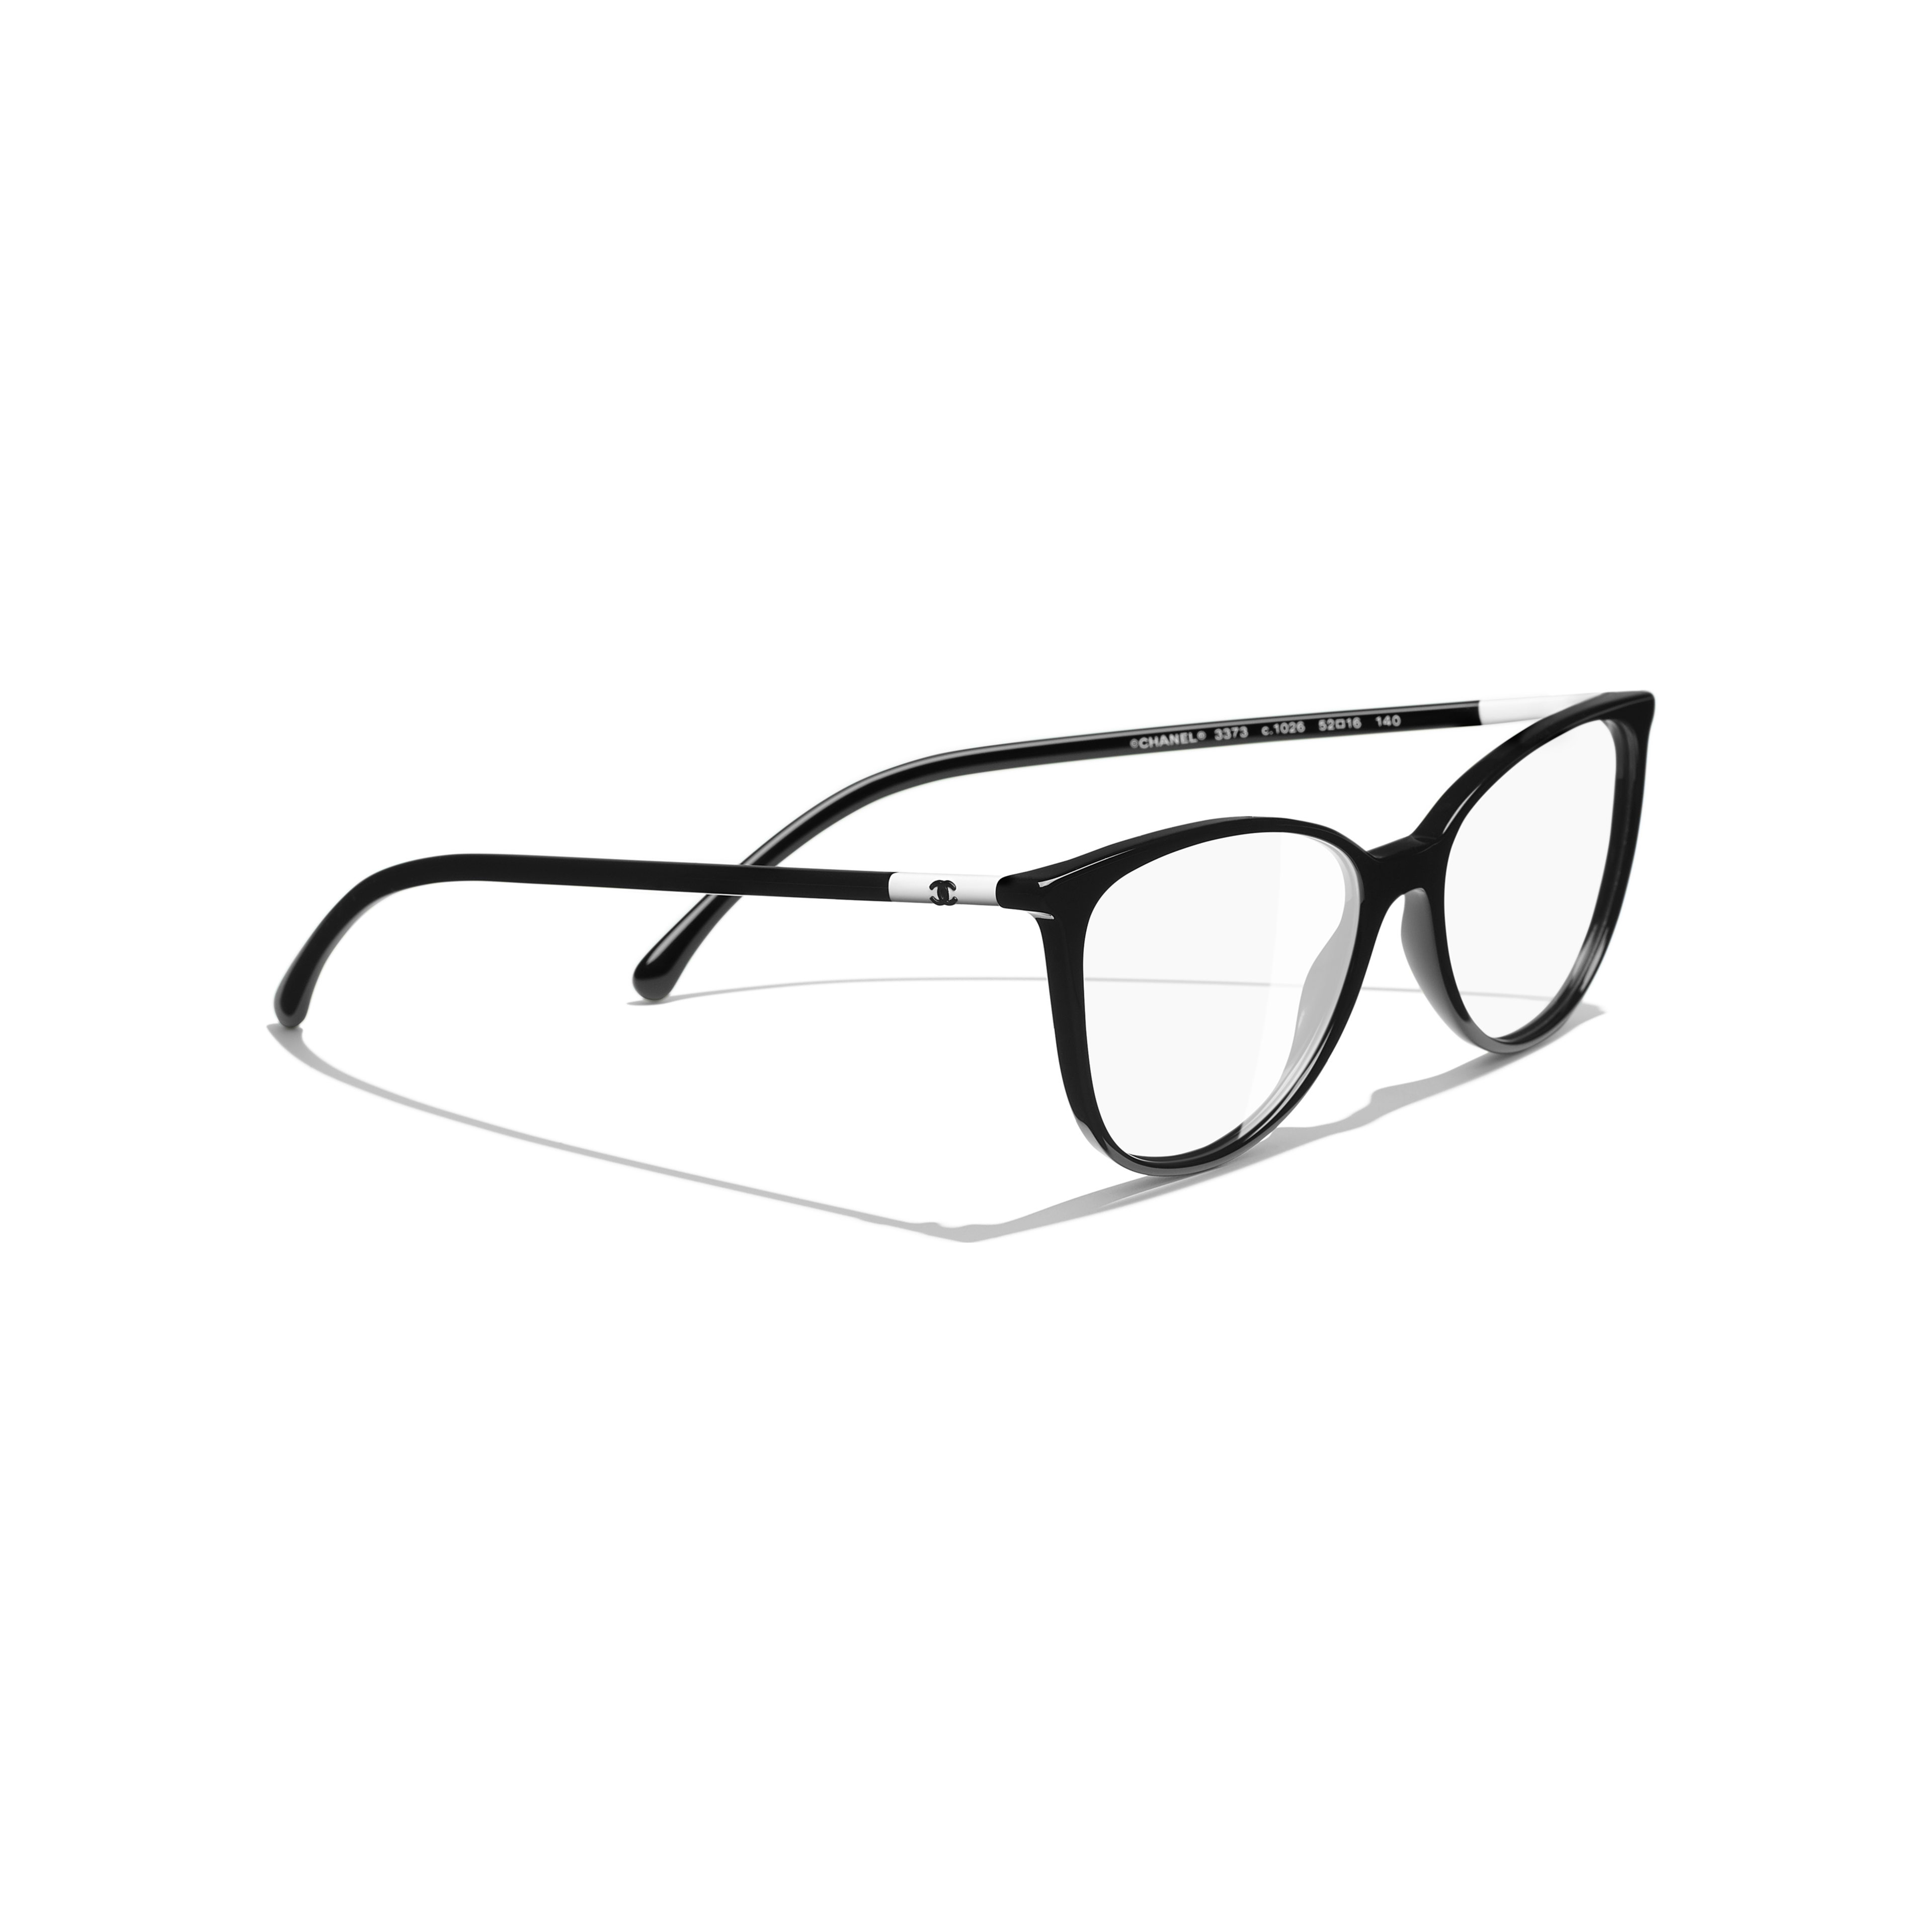 Square Eyeglasses - Black & White - Acetate - CHANEL - Extra view - see standard sized version